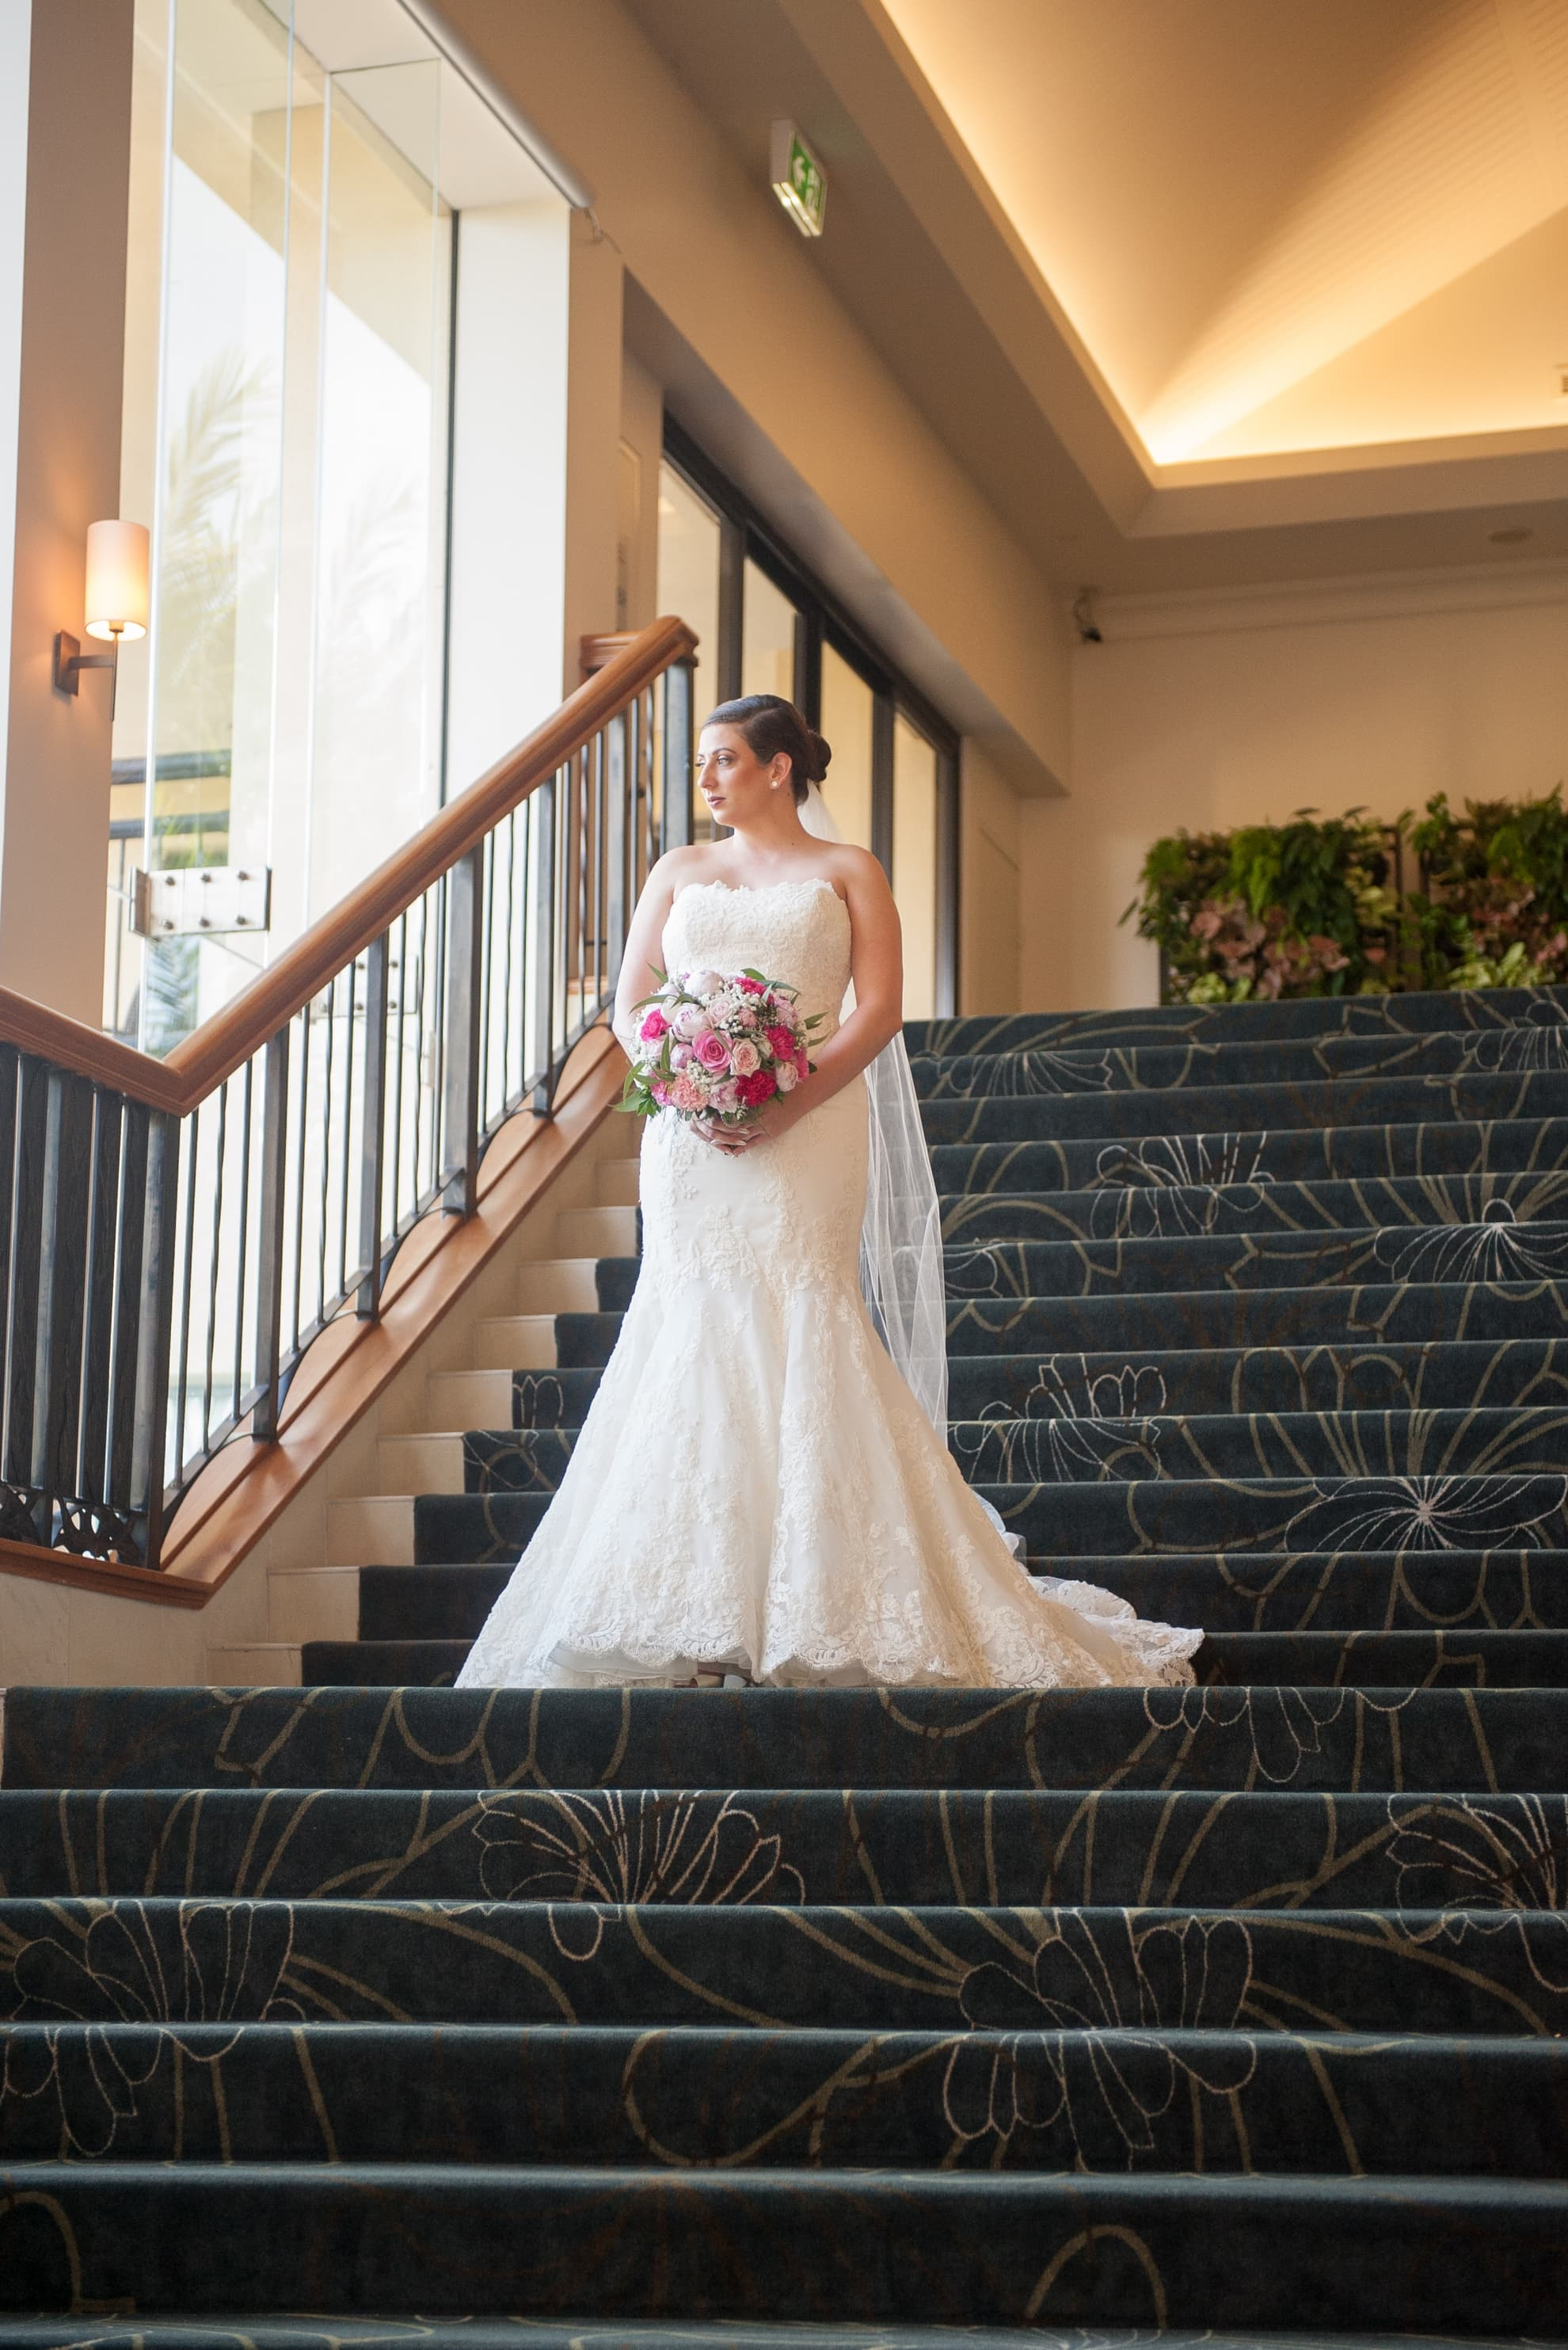 bride-standing-in-the-middle-of-staircase-looking-out-the-window